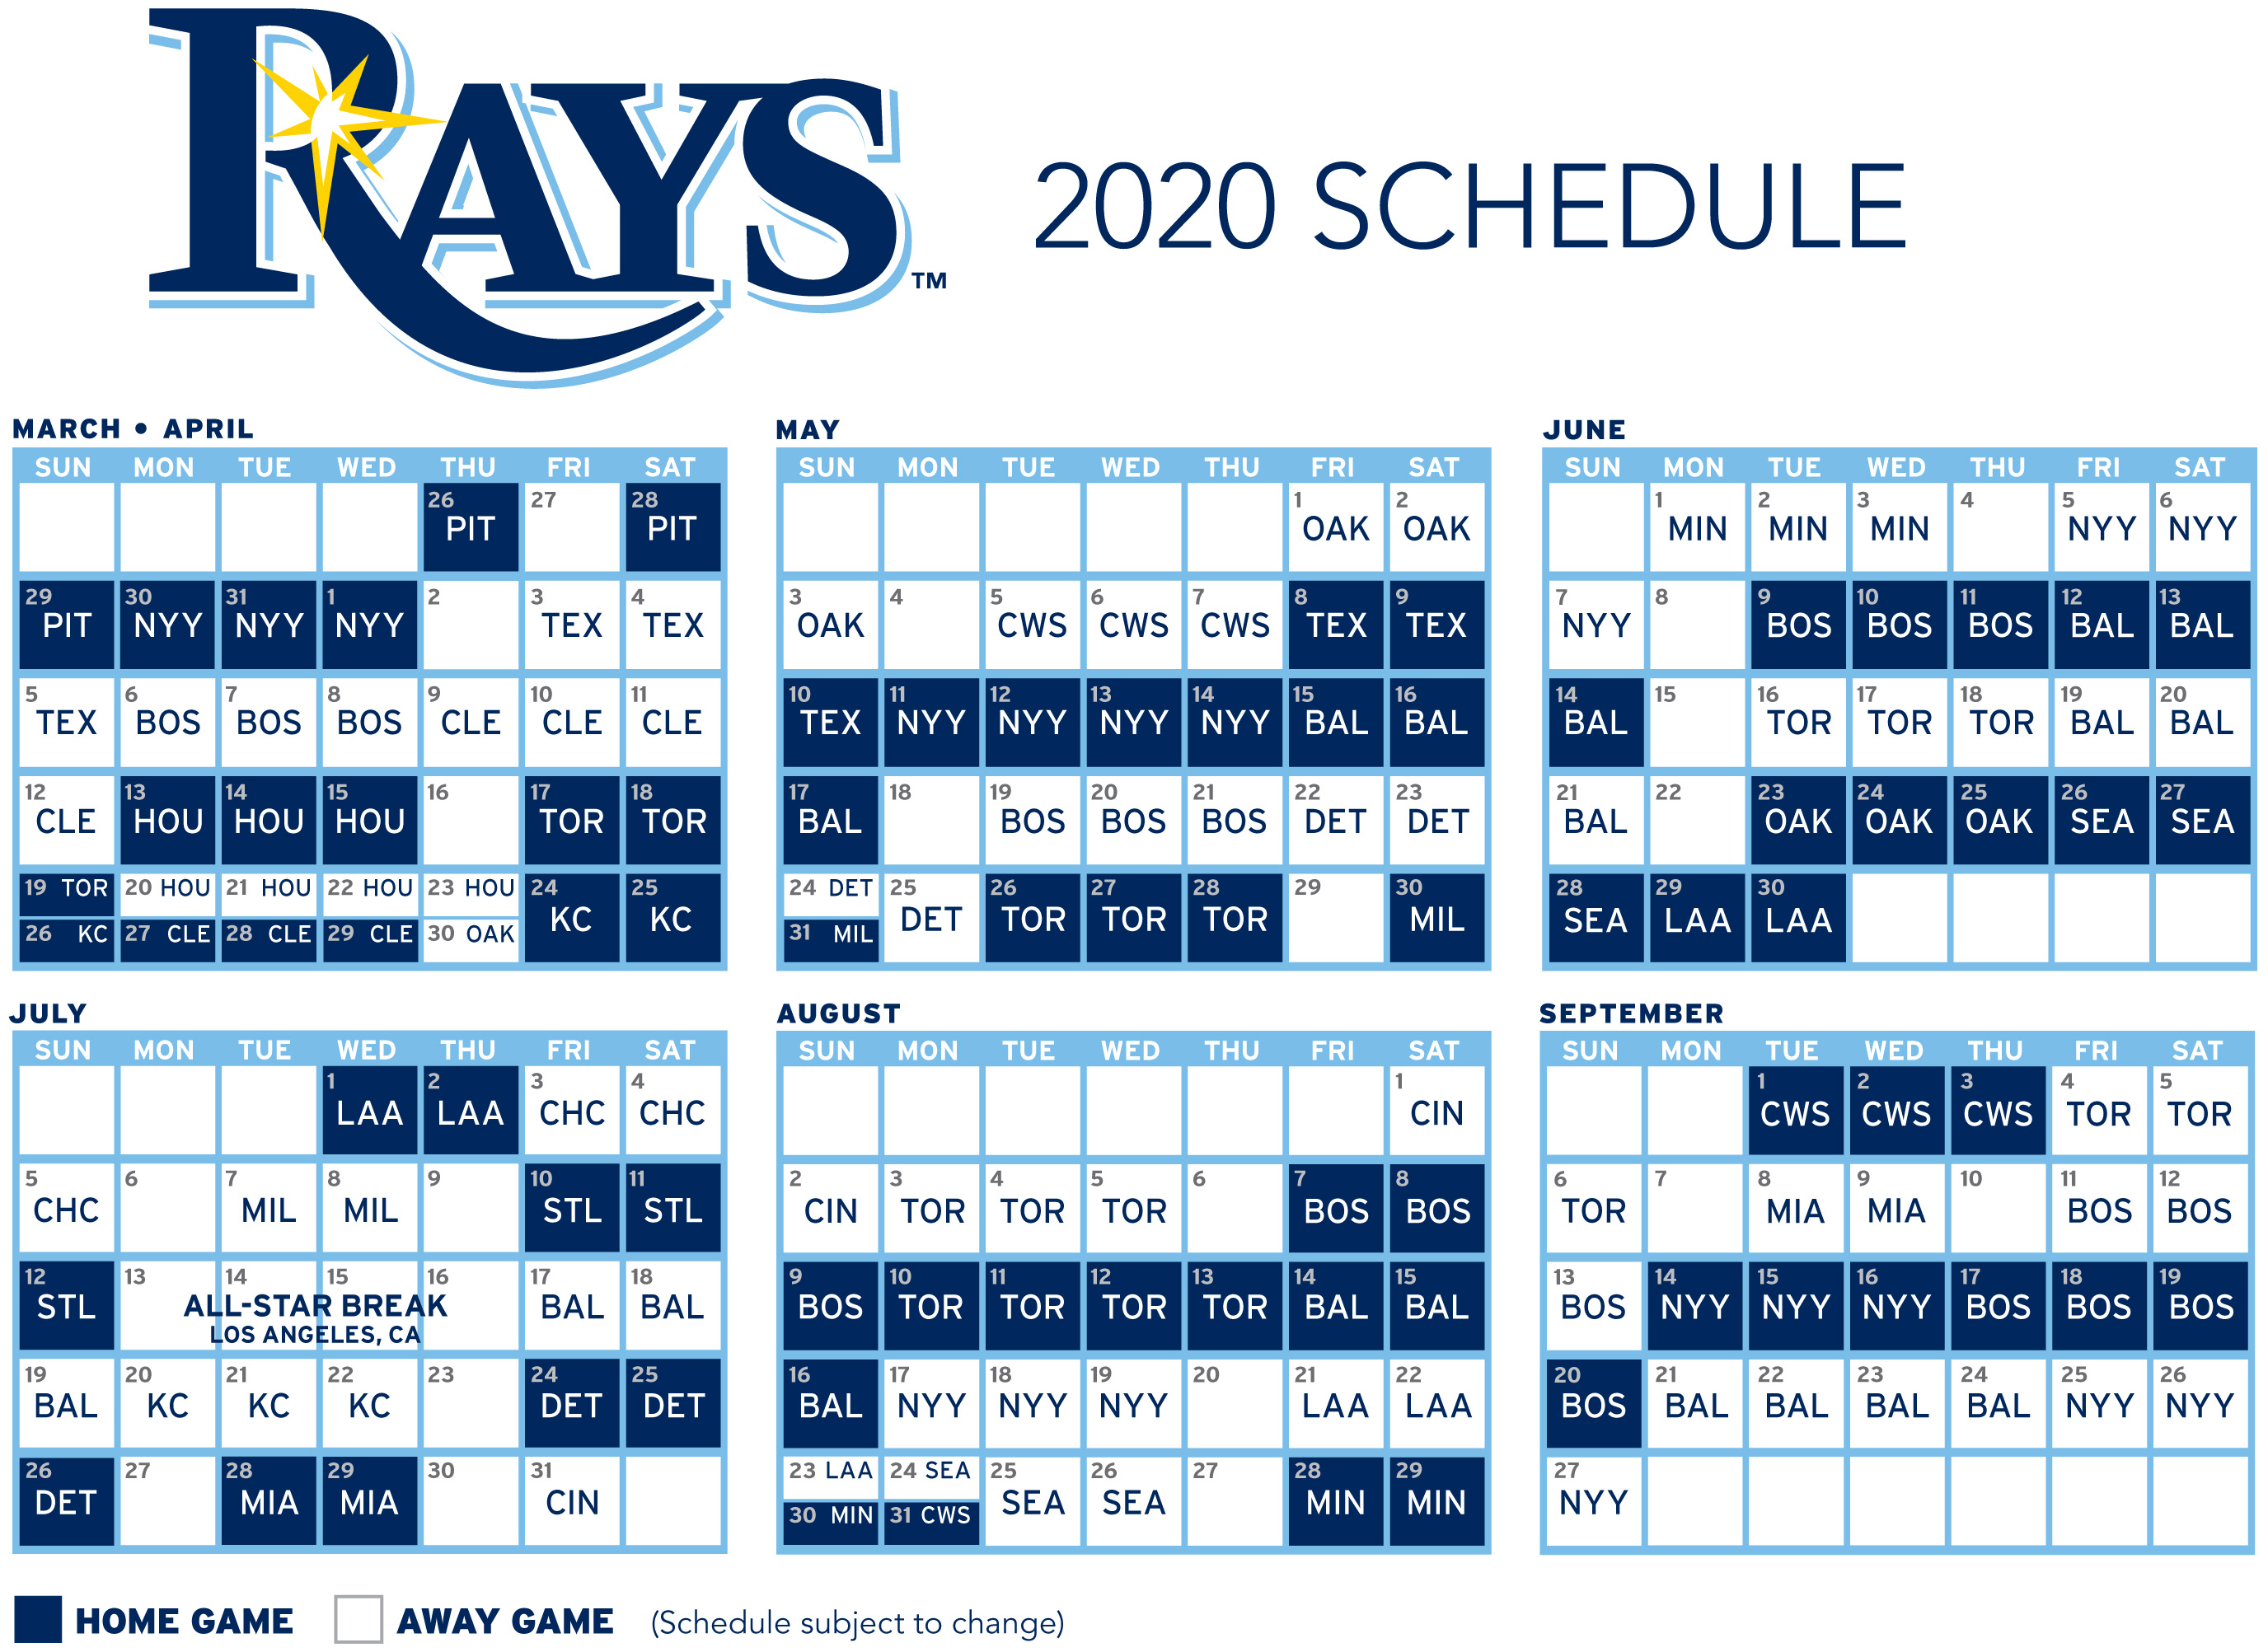 Mlb 2020 Schedule.Rays Will Finish 2020 Season With High Profile Games Against